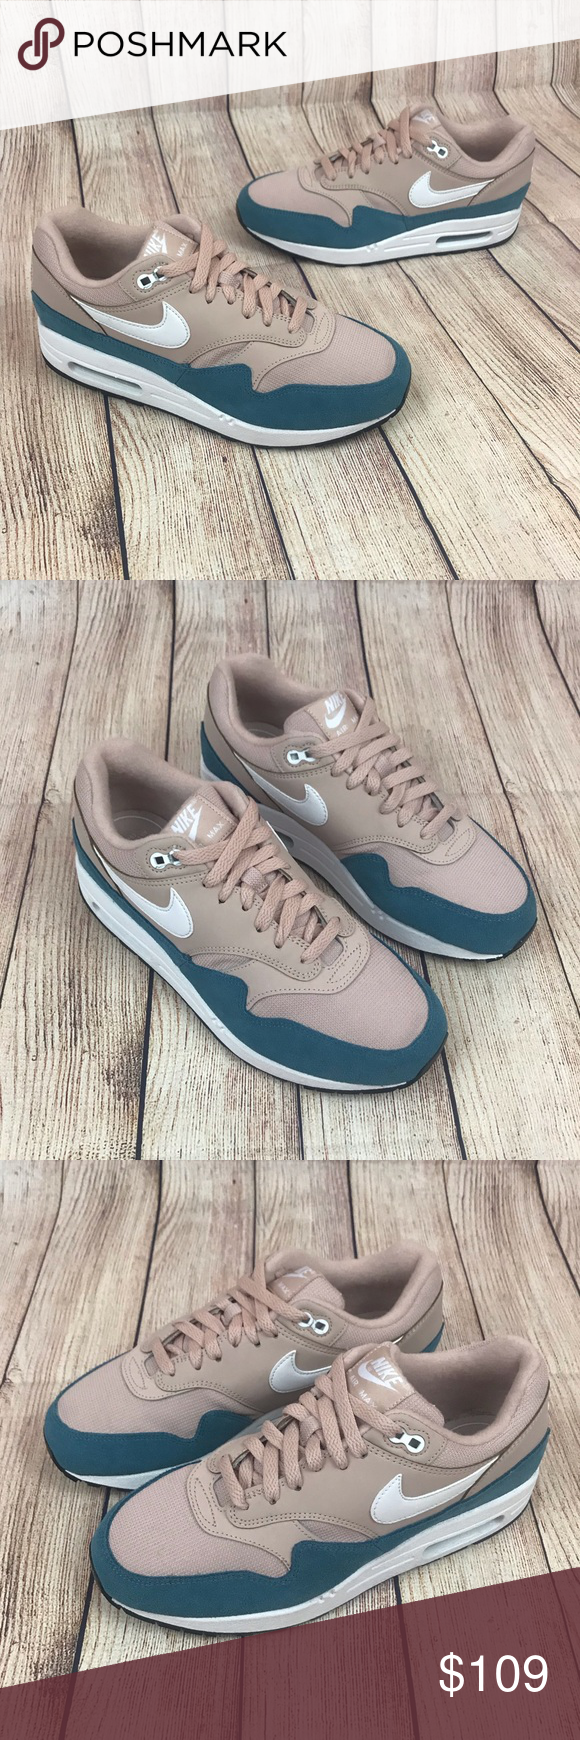 NEW Nike Air Max 1 Celestial Teal Blush Pink White NEW